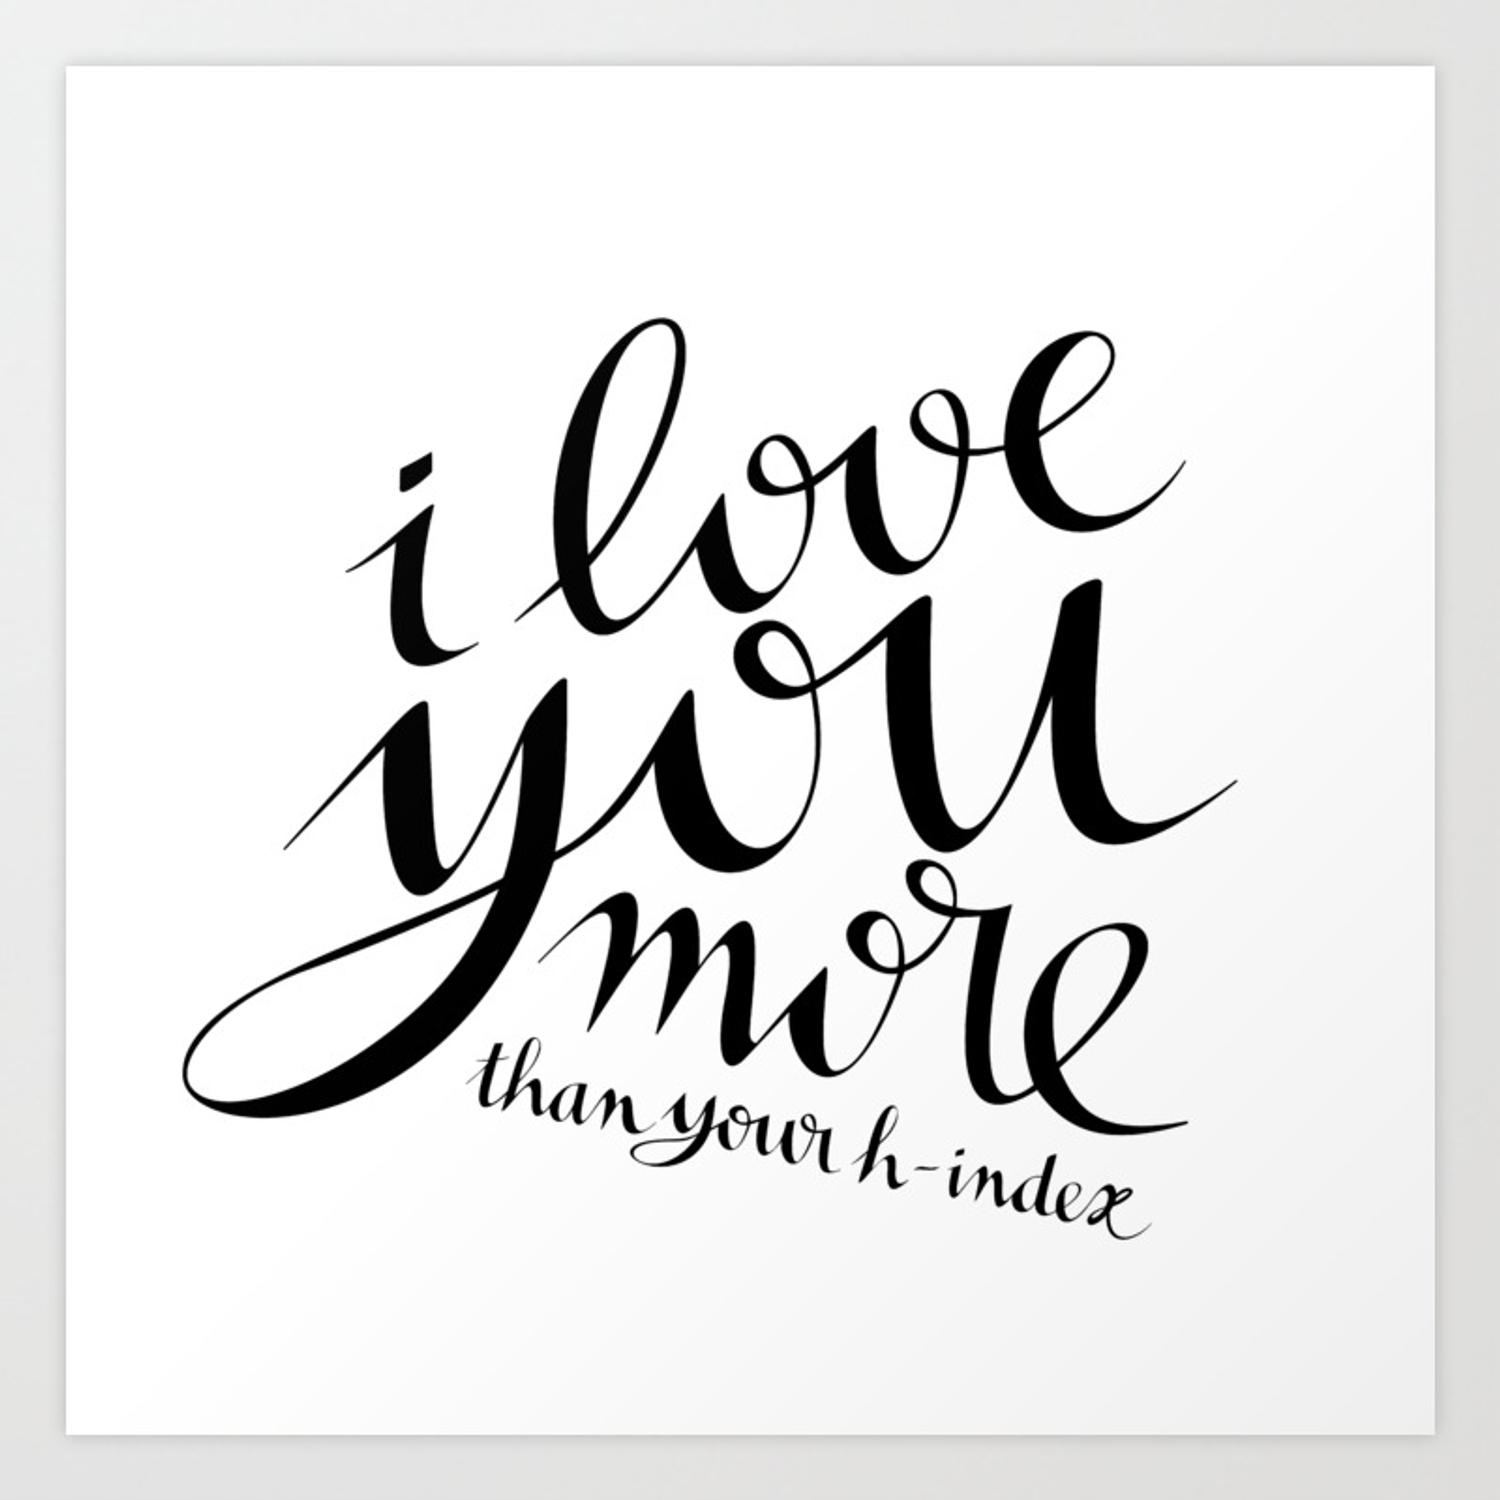 I Love You More Than Your H Index Art Print By Alphaangle Society6